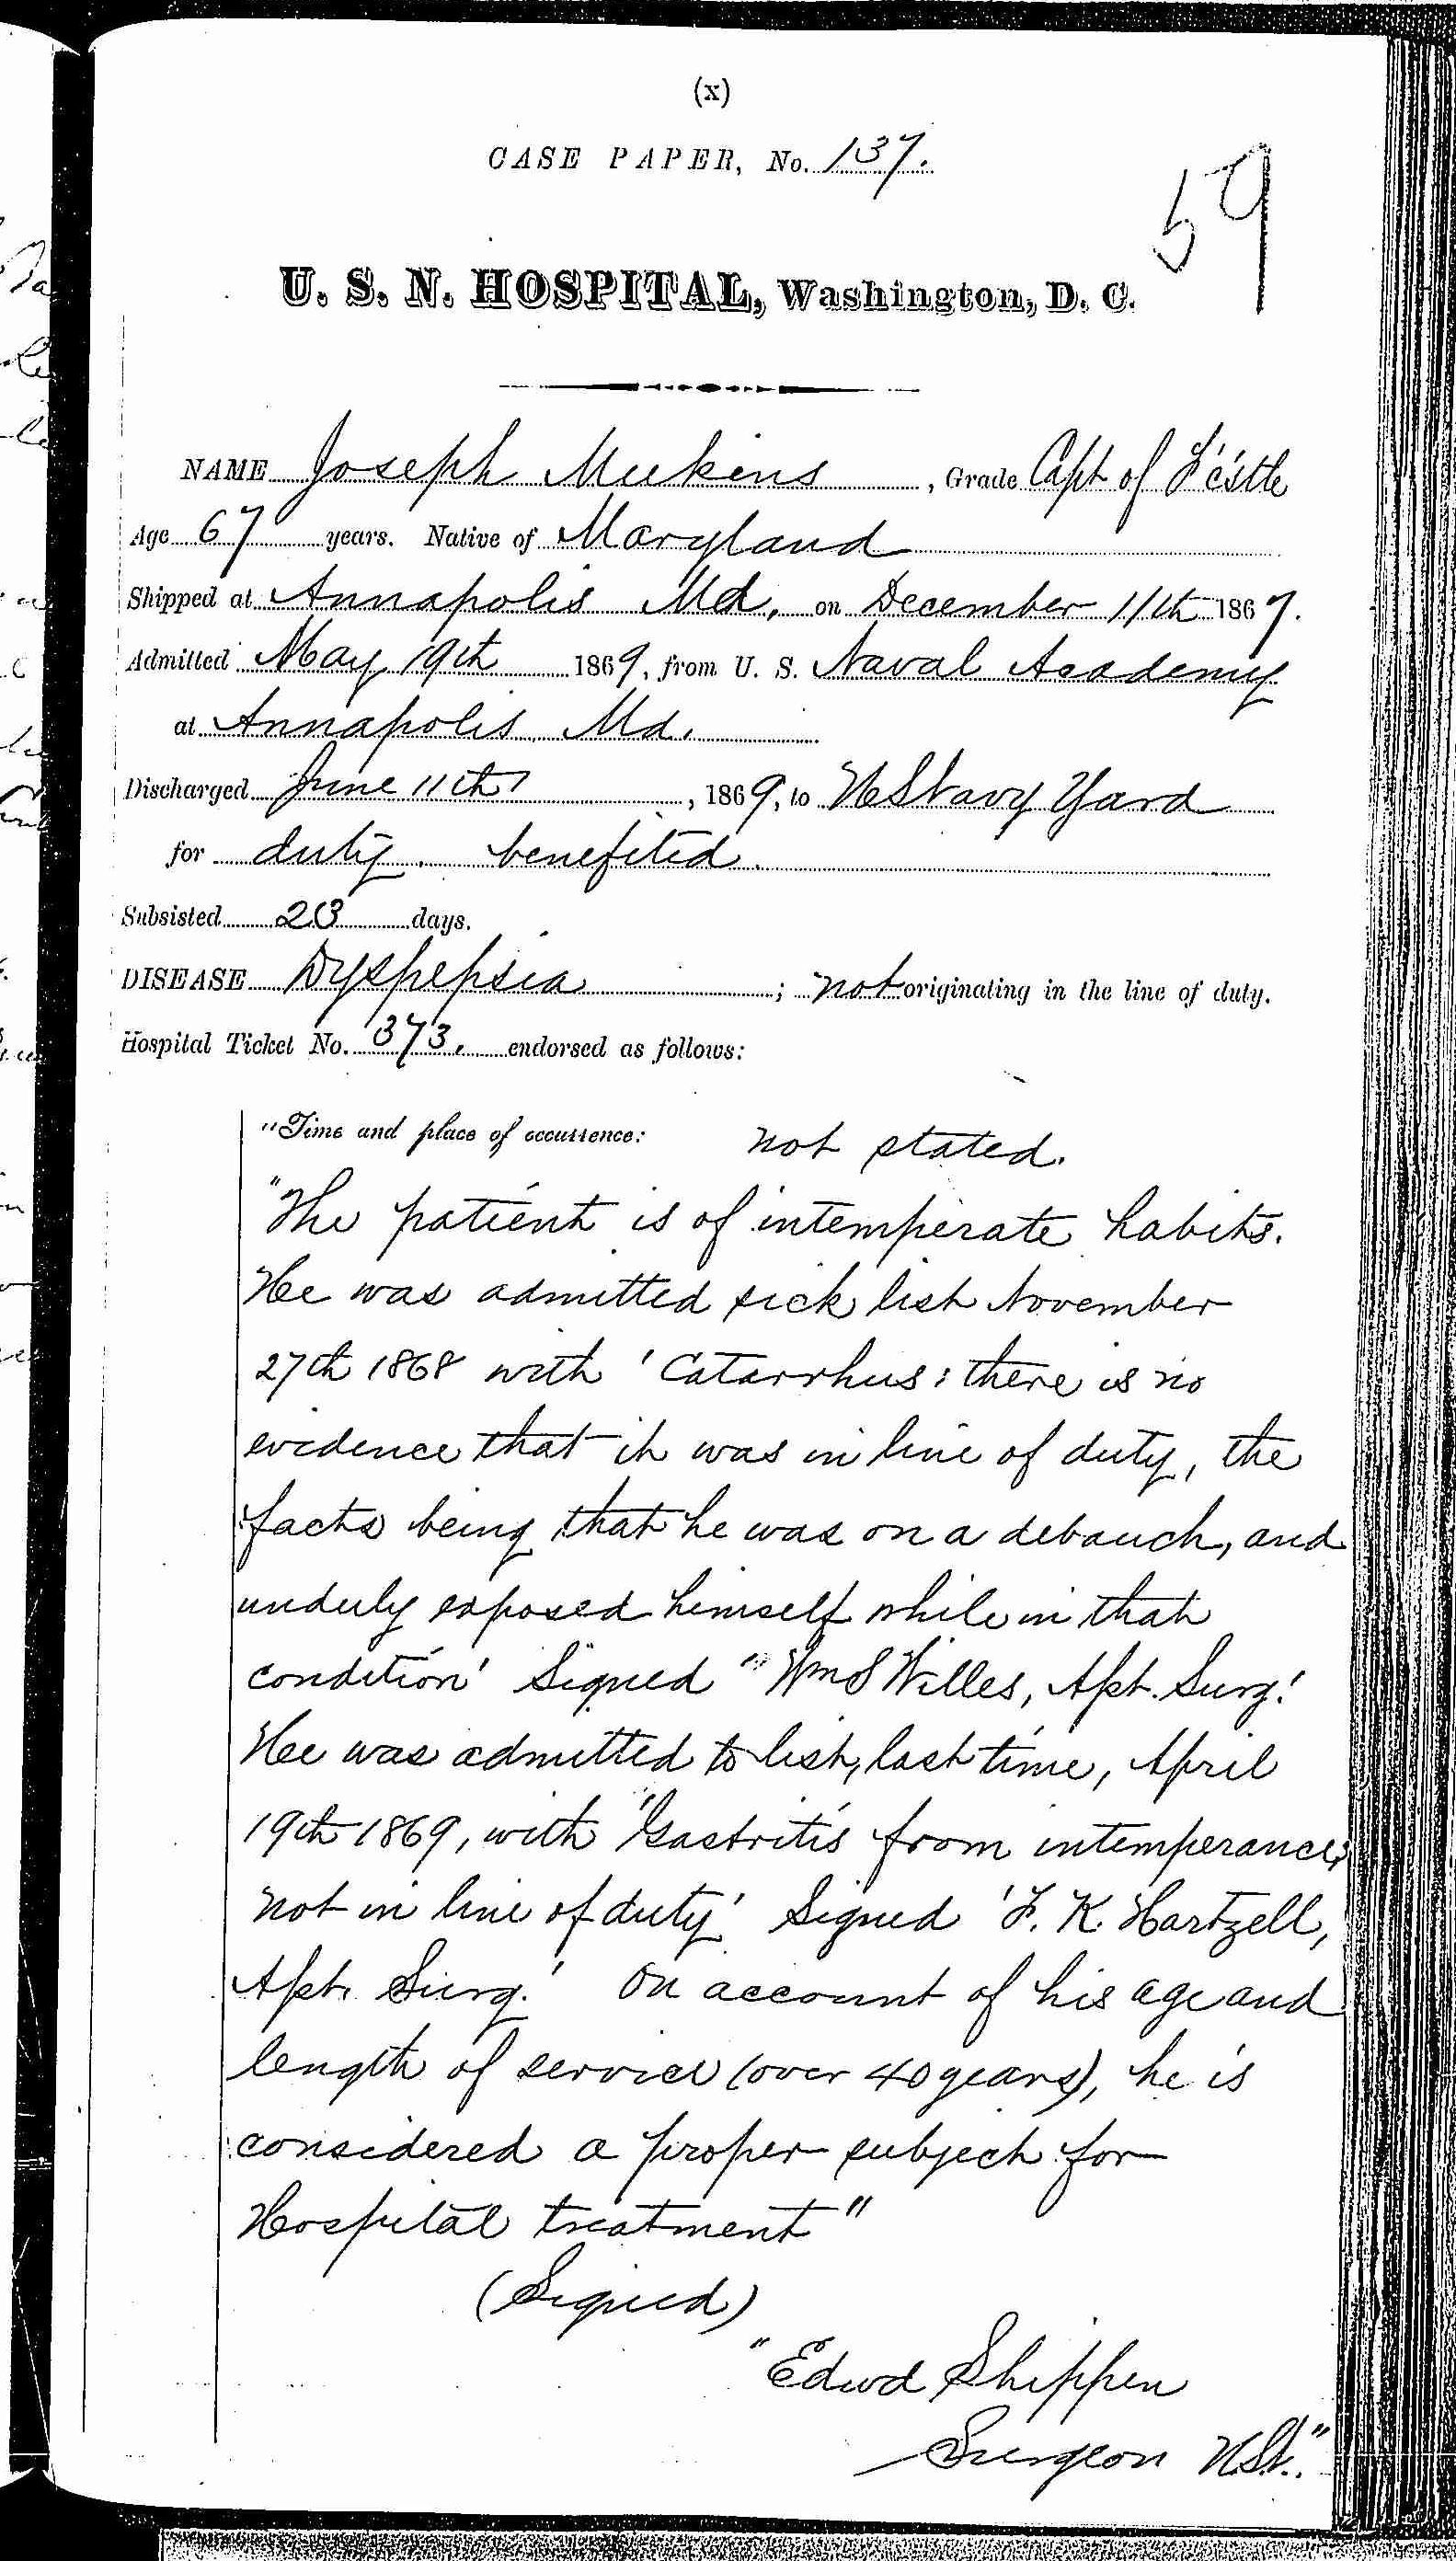 Entry for Joseph Meekins (page 1 of 3) in the log Hospital Tickets and Case Papers - Naval Hospital - Washington, D.C. - 1868-69